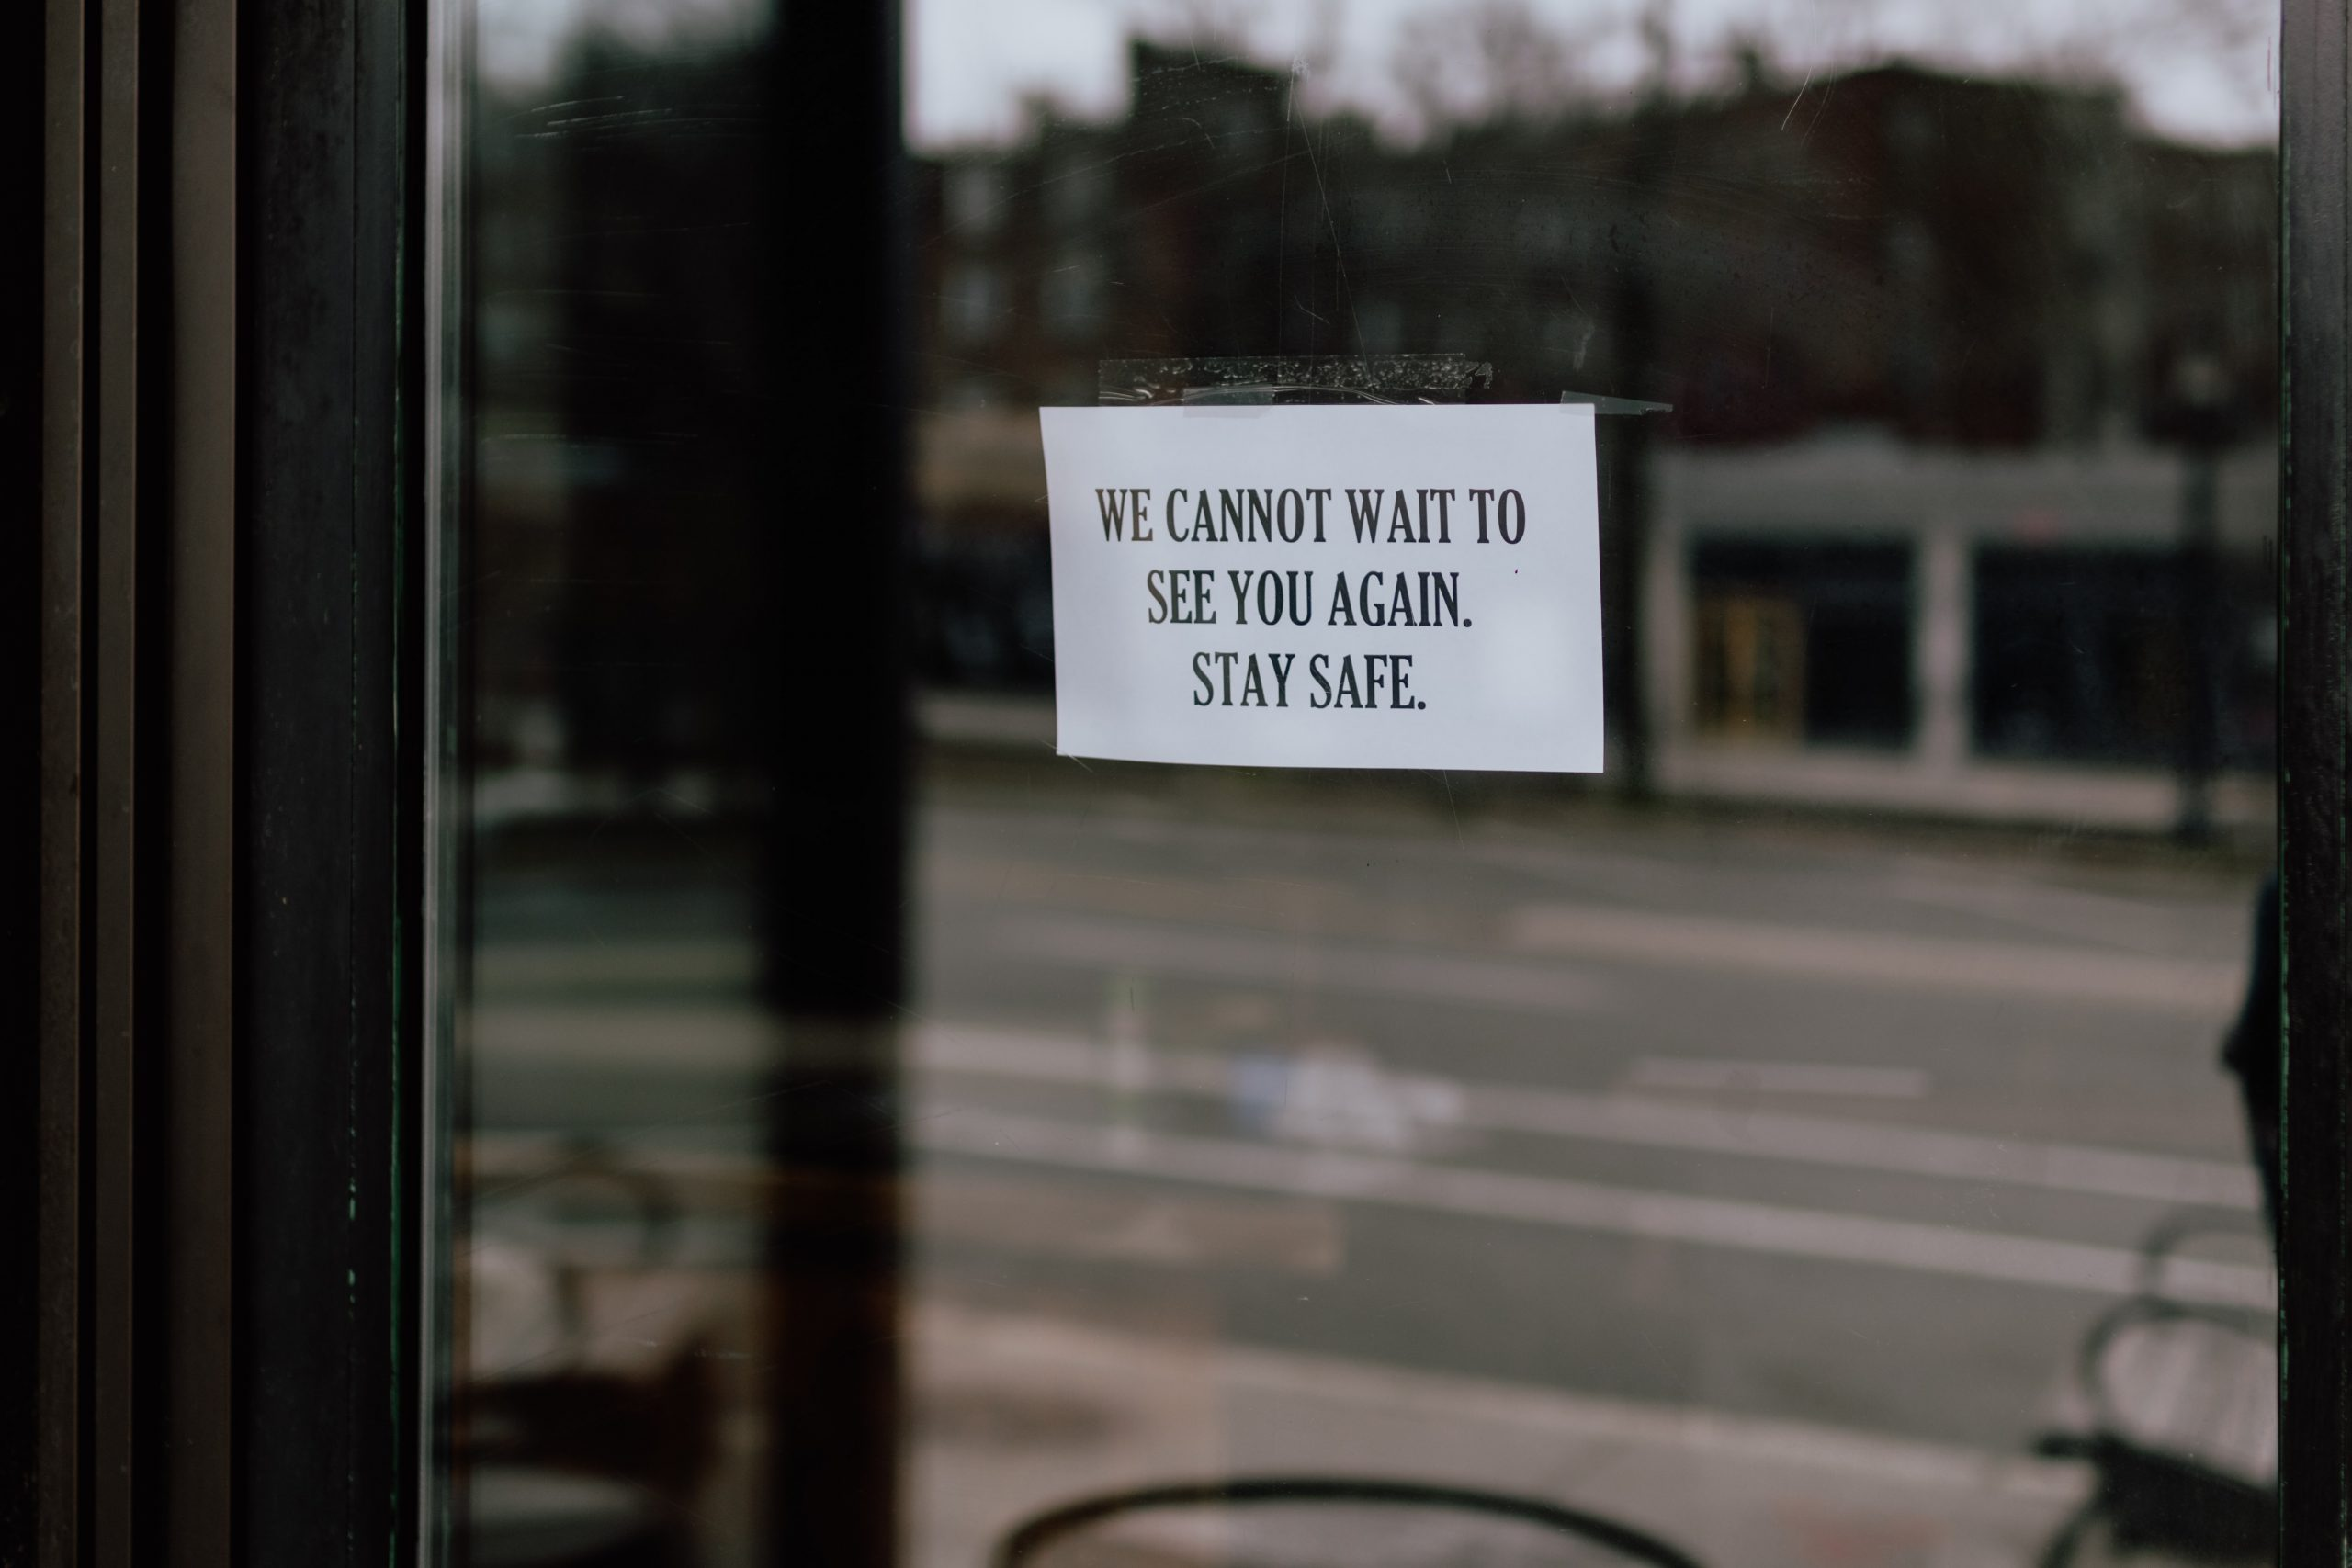 Closed, stay safe sign. Photo by Kelly Sikkema on Unsplash